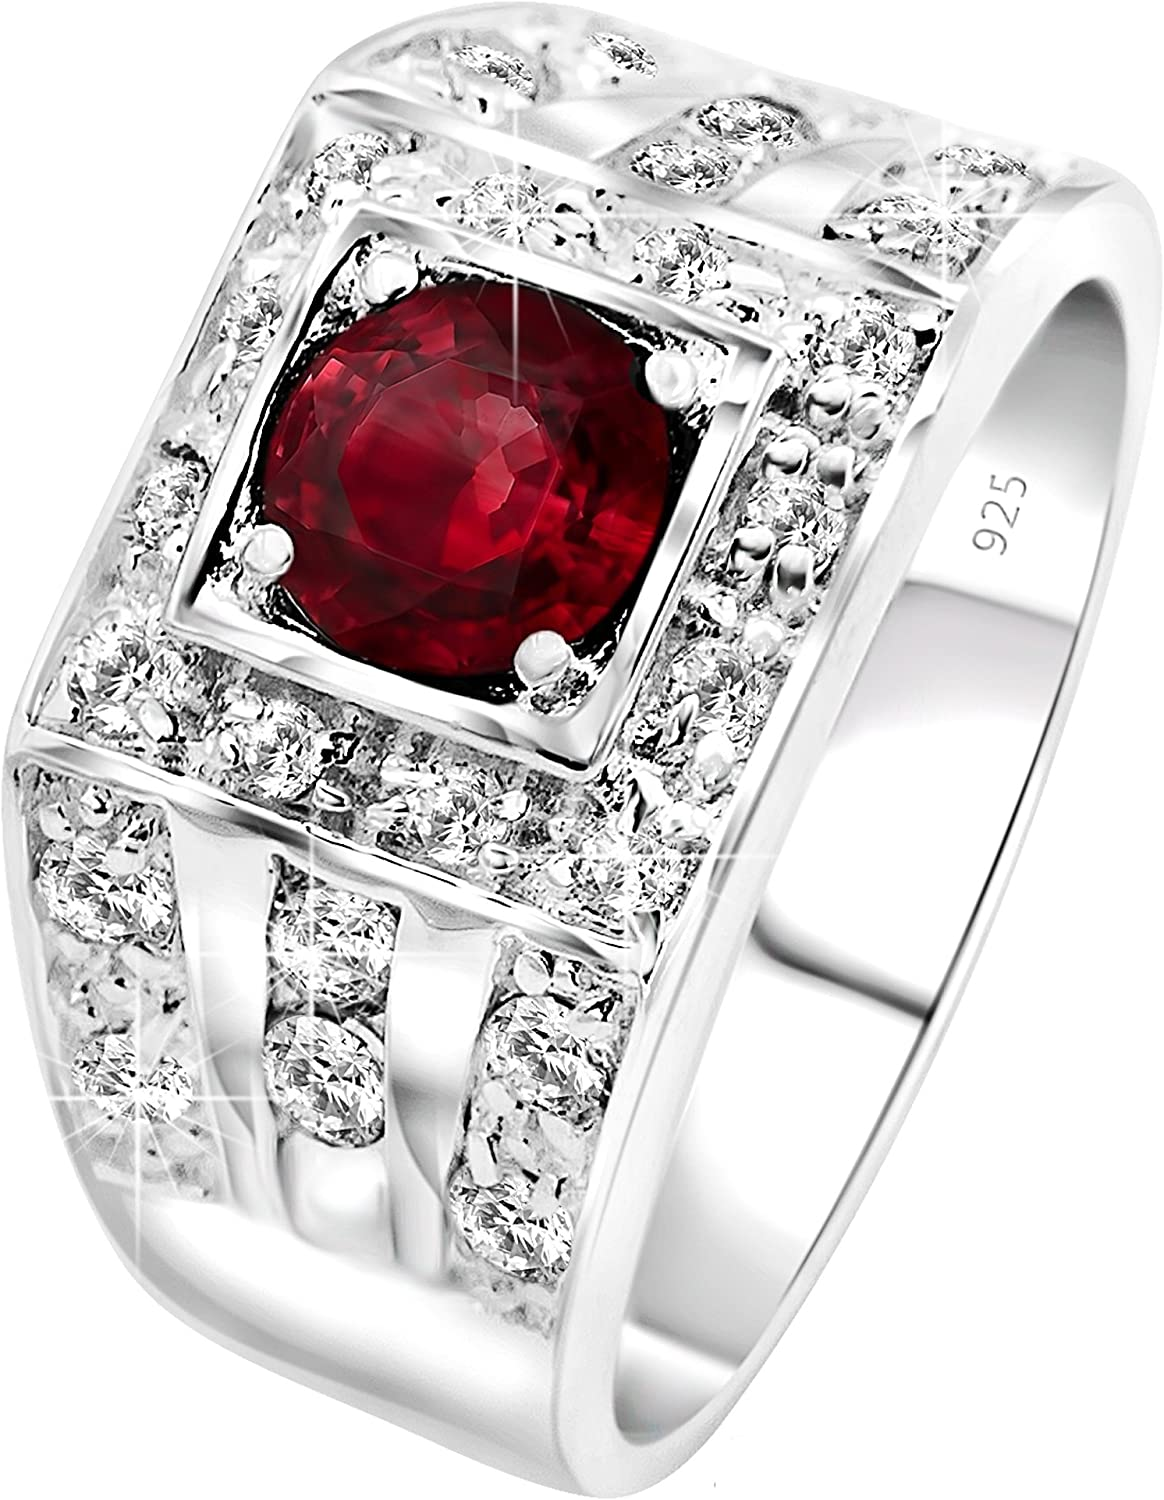 [2-5 Days Delivery] Men's Elegant Sterling Silver .925 High Polish Ring Featuring a Synthetic Red Ruby Center Stone Surrounded by 26 Fancy Round Prong-Set Cubic Zirconia (CZ) Stones. With Presentation Box.